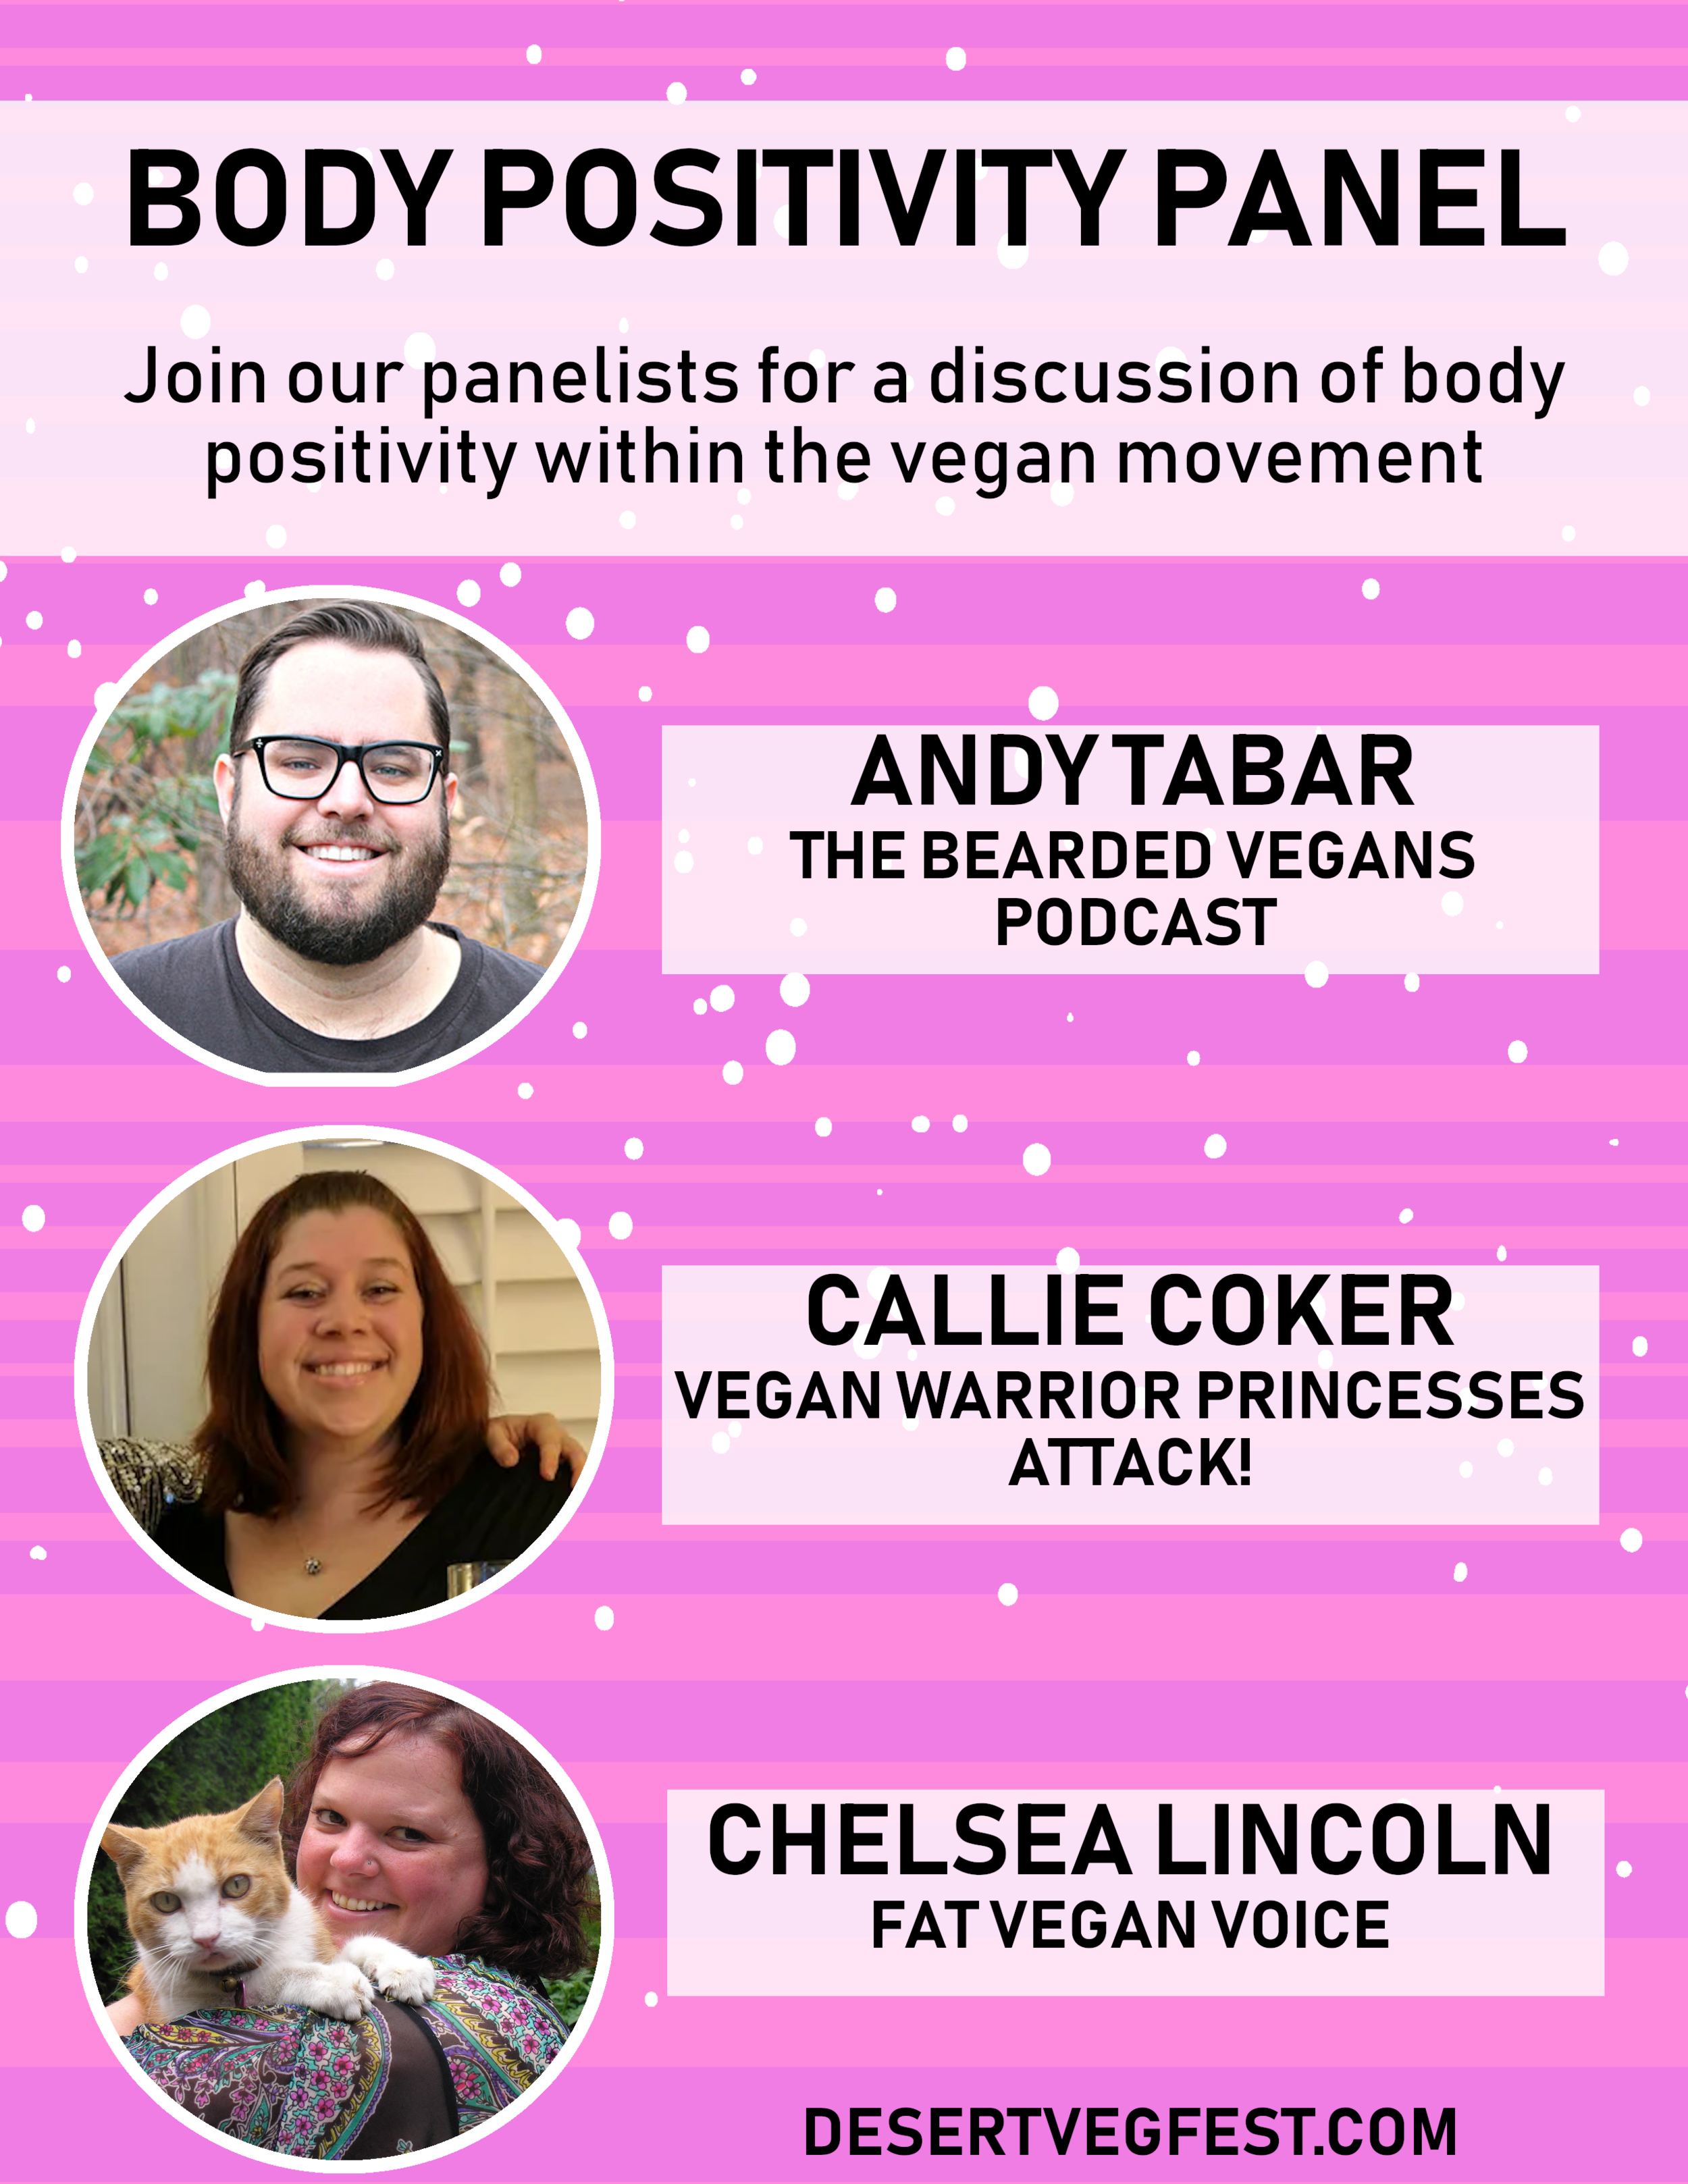 BODY POSITIVITY PANEL: 1 PM - Join Andy (The Bearded Vegans), Callie (Vegan Warrior Princesses Attack!) and Chelsea (Fat Vegan Voice) for a discussion on body positivity in the vegan community